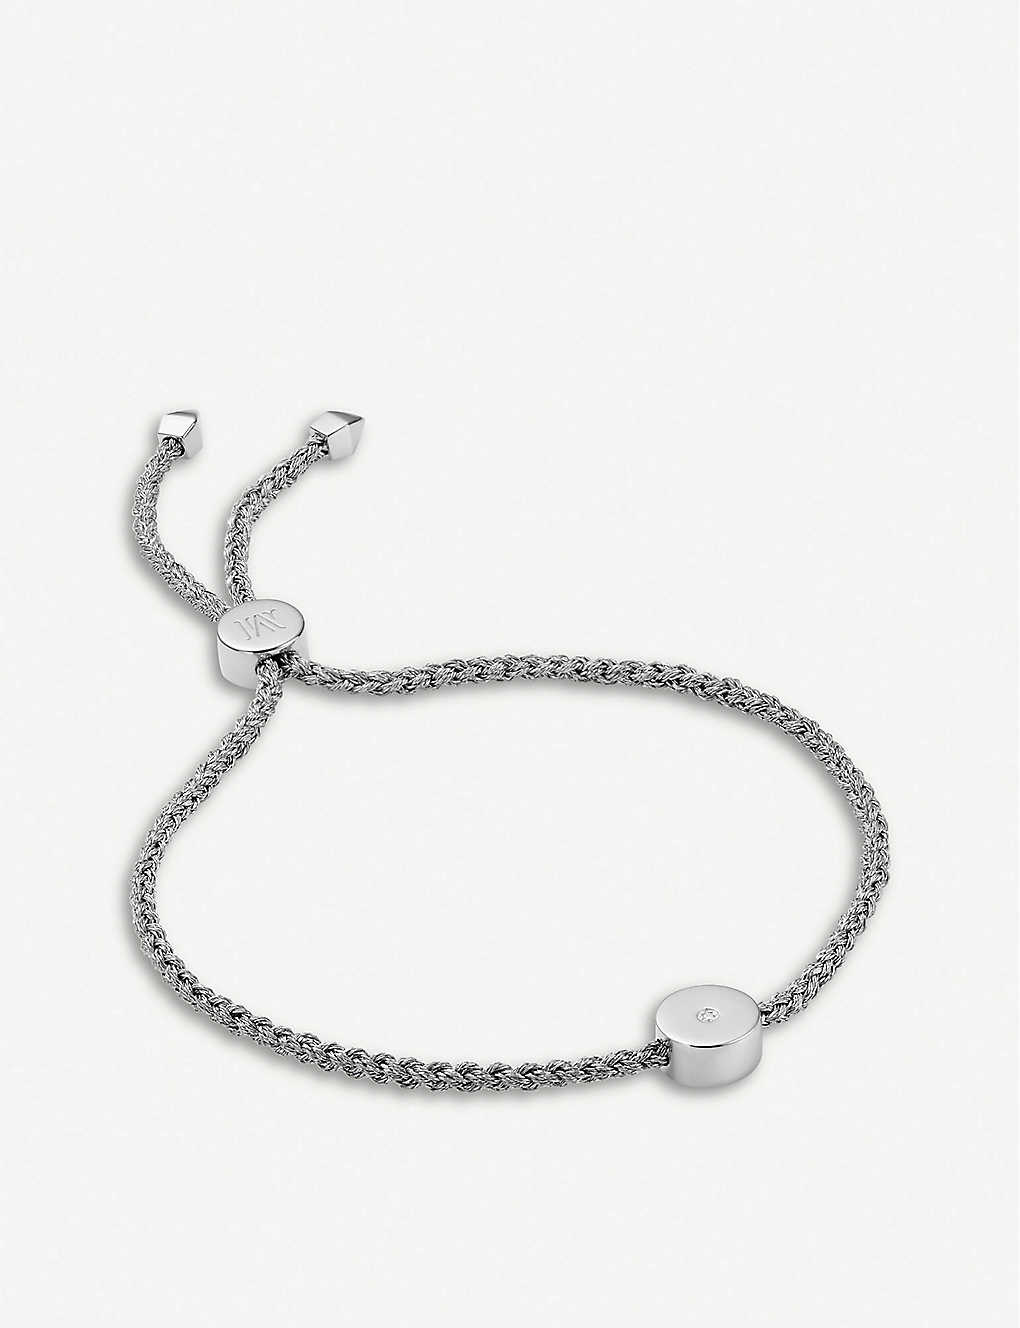 a3ad0c608 MONICA VINADER - Linear Solo sterling silver and diamond friendship ...